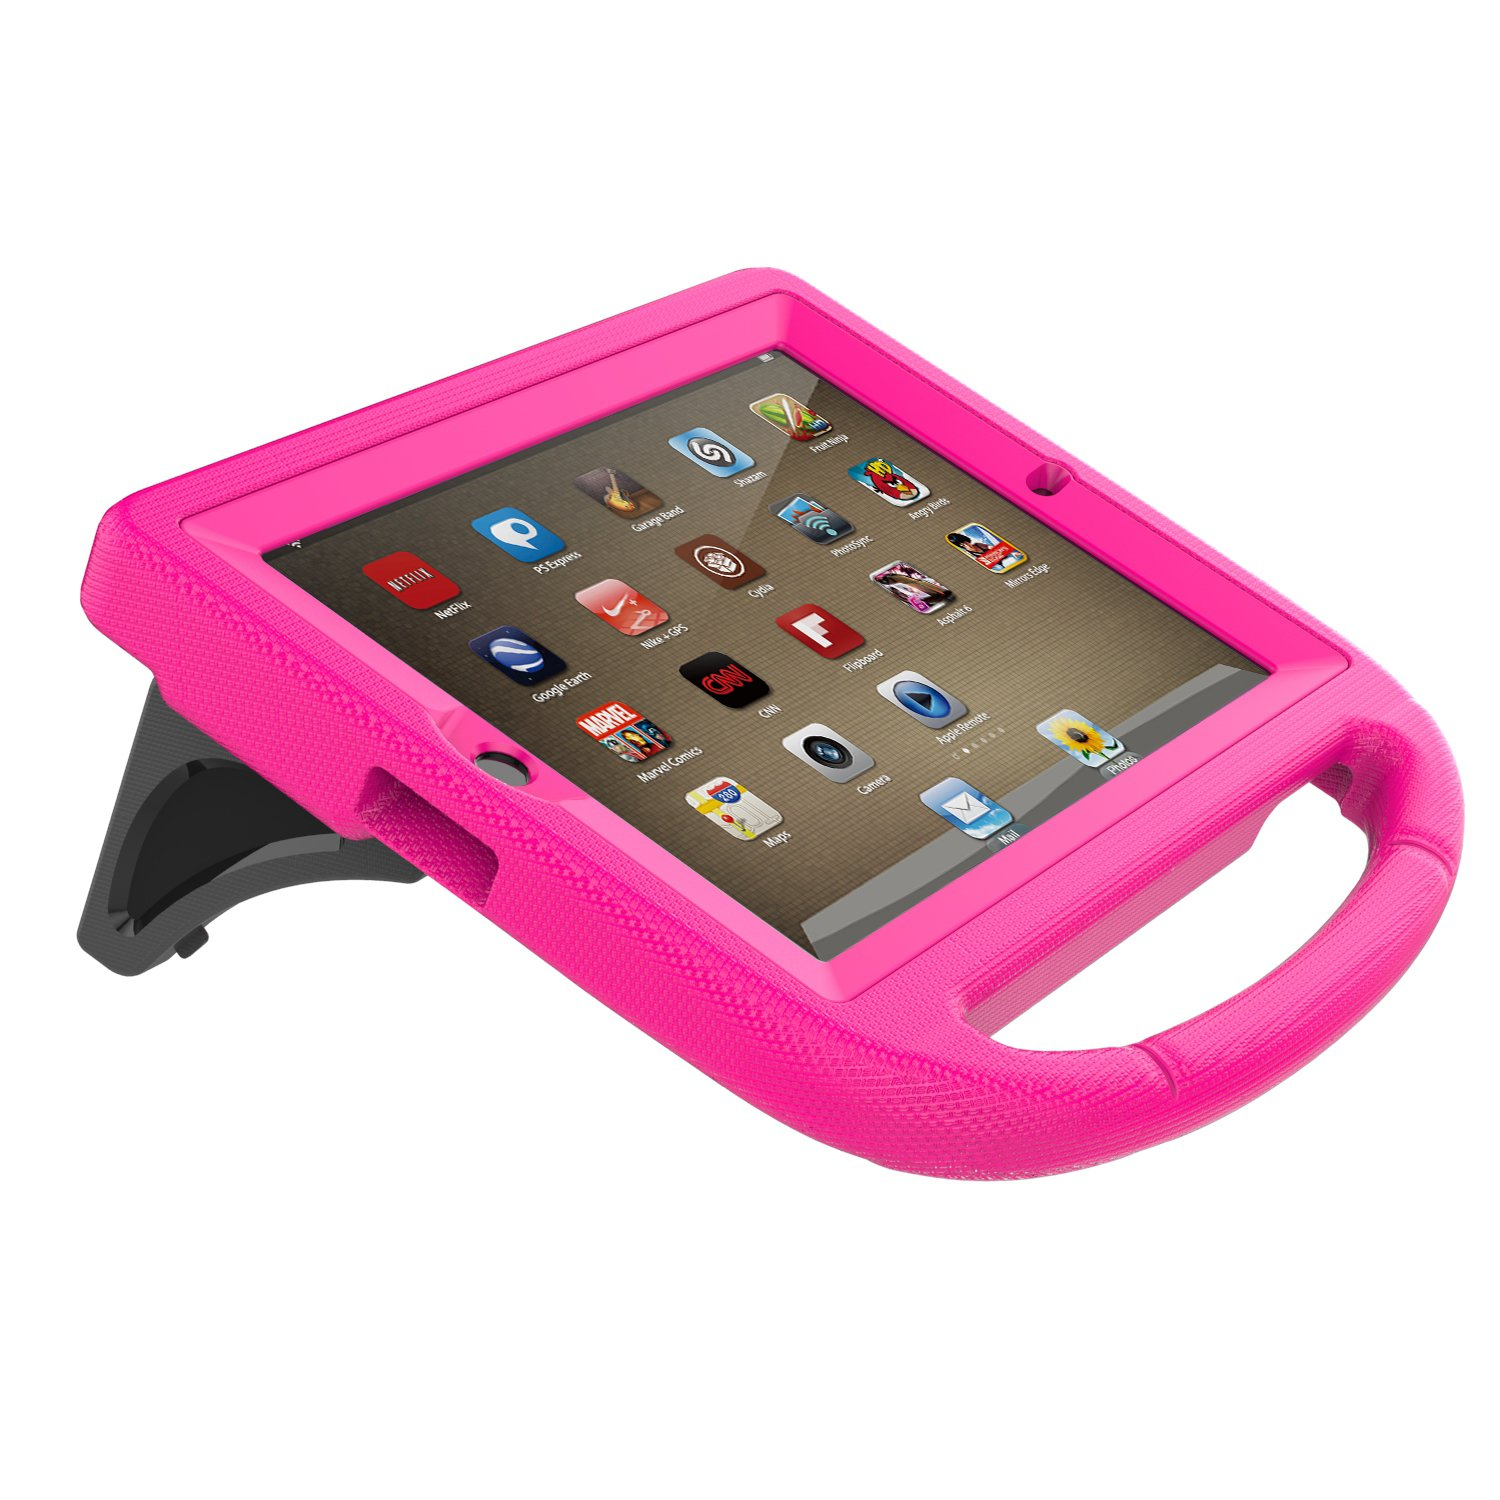 LTROP iPad 2 3 4 Kids Case - Light Weight Shock Proof Handle Friendly Convertible Stand Kids Case with Bulit in Screen Protector for iPad 2, iPad 3rd Generation, iPad 4th Generation,Rose by LTROP (Image #8)